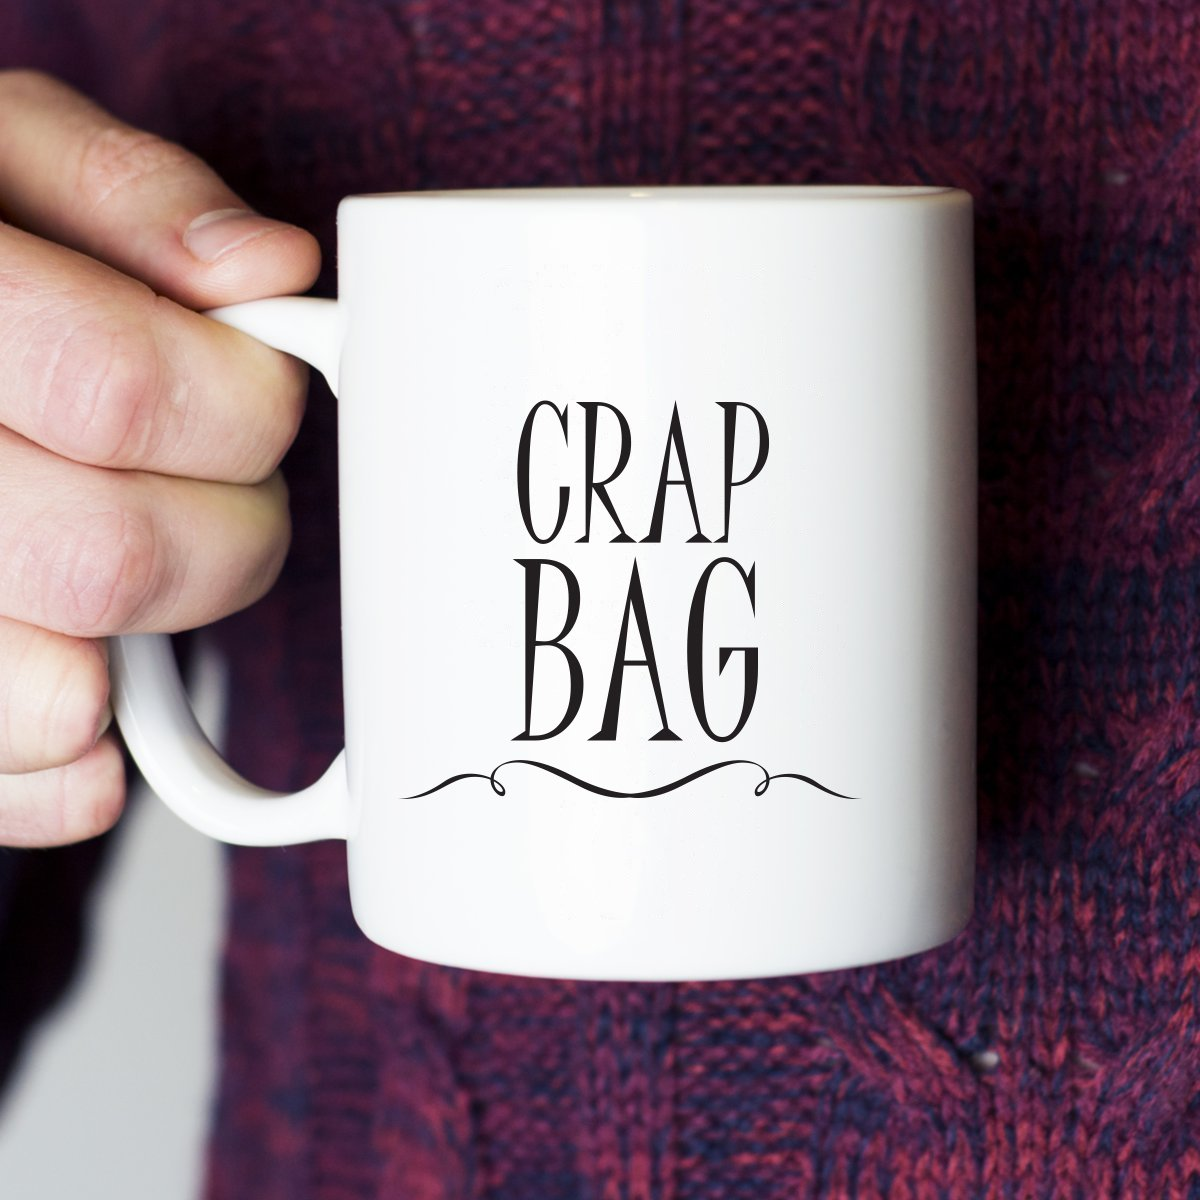 Princess Consuela Banana Hammock & Crap Bag Couples Funny Coffee Mug Set 11oz - Friends TV Show Quote - Central Perk - Unique Gift For Boyfriend and Girlfriend - His and Hers Anniversary Present by Gelid (Image #3)